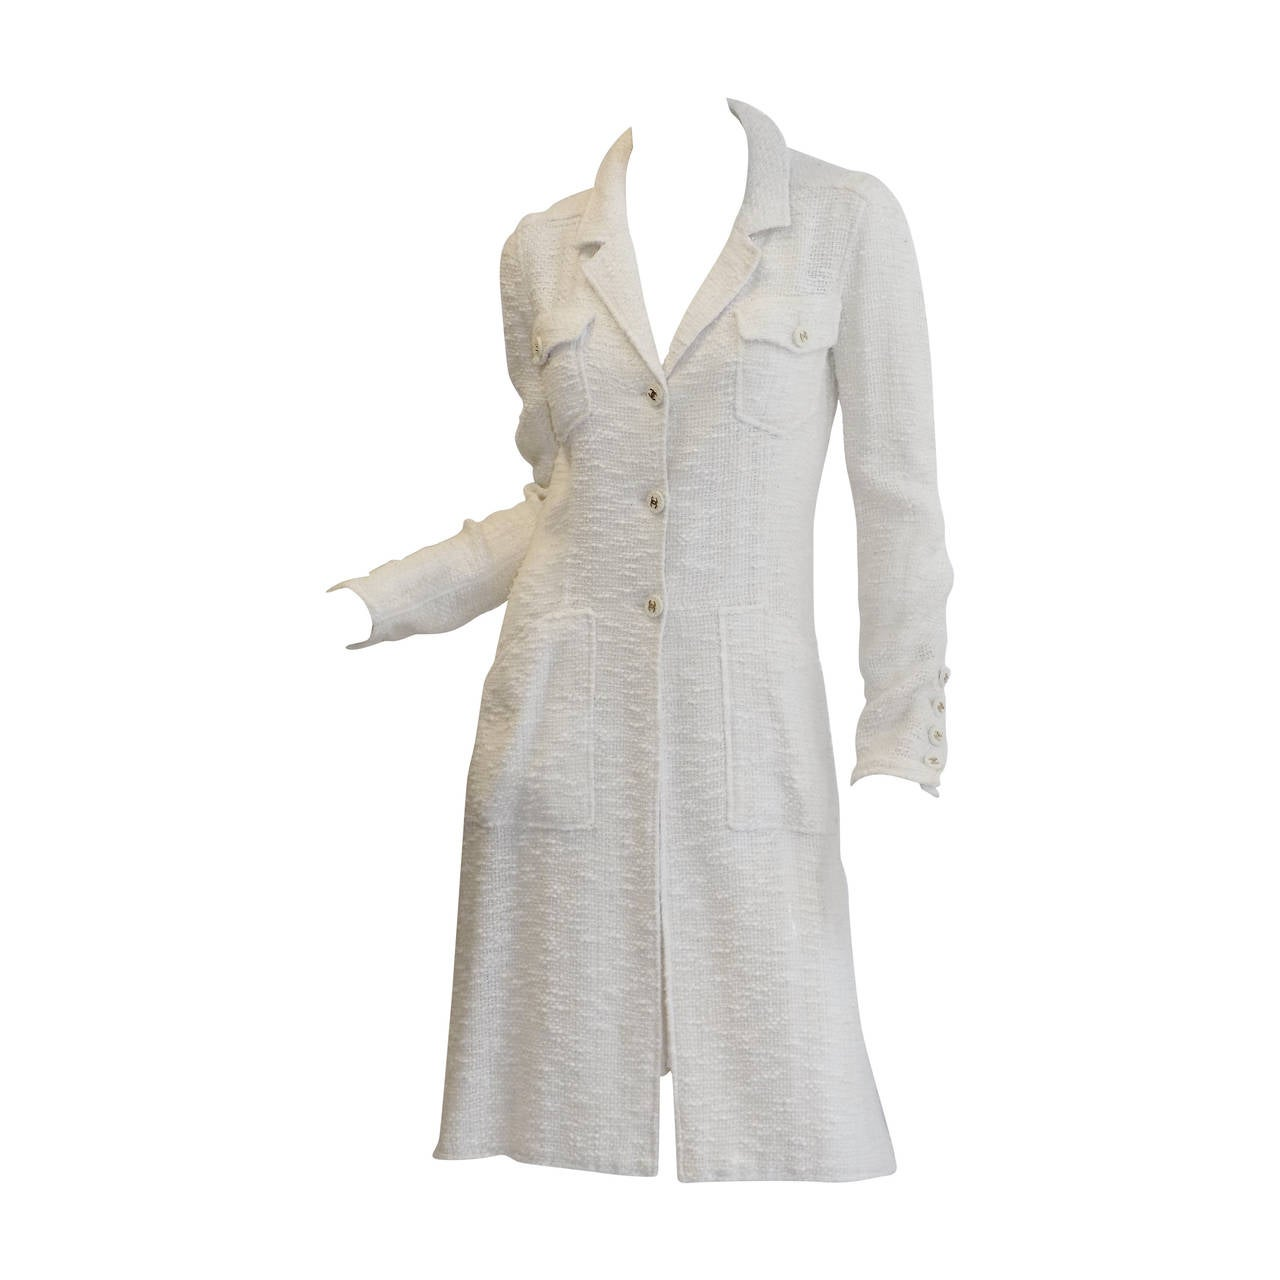 Chanel catwalk vintage winter white  coat dress duster 1